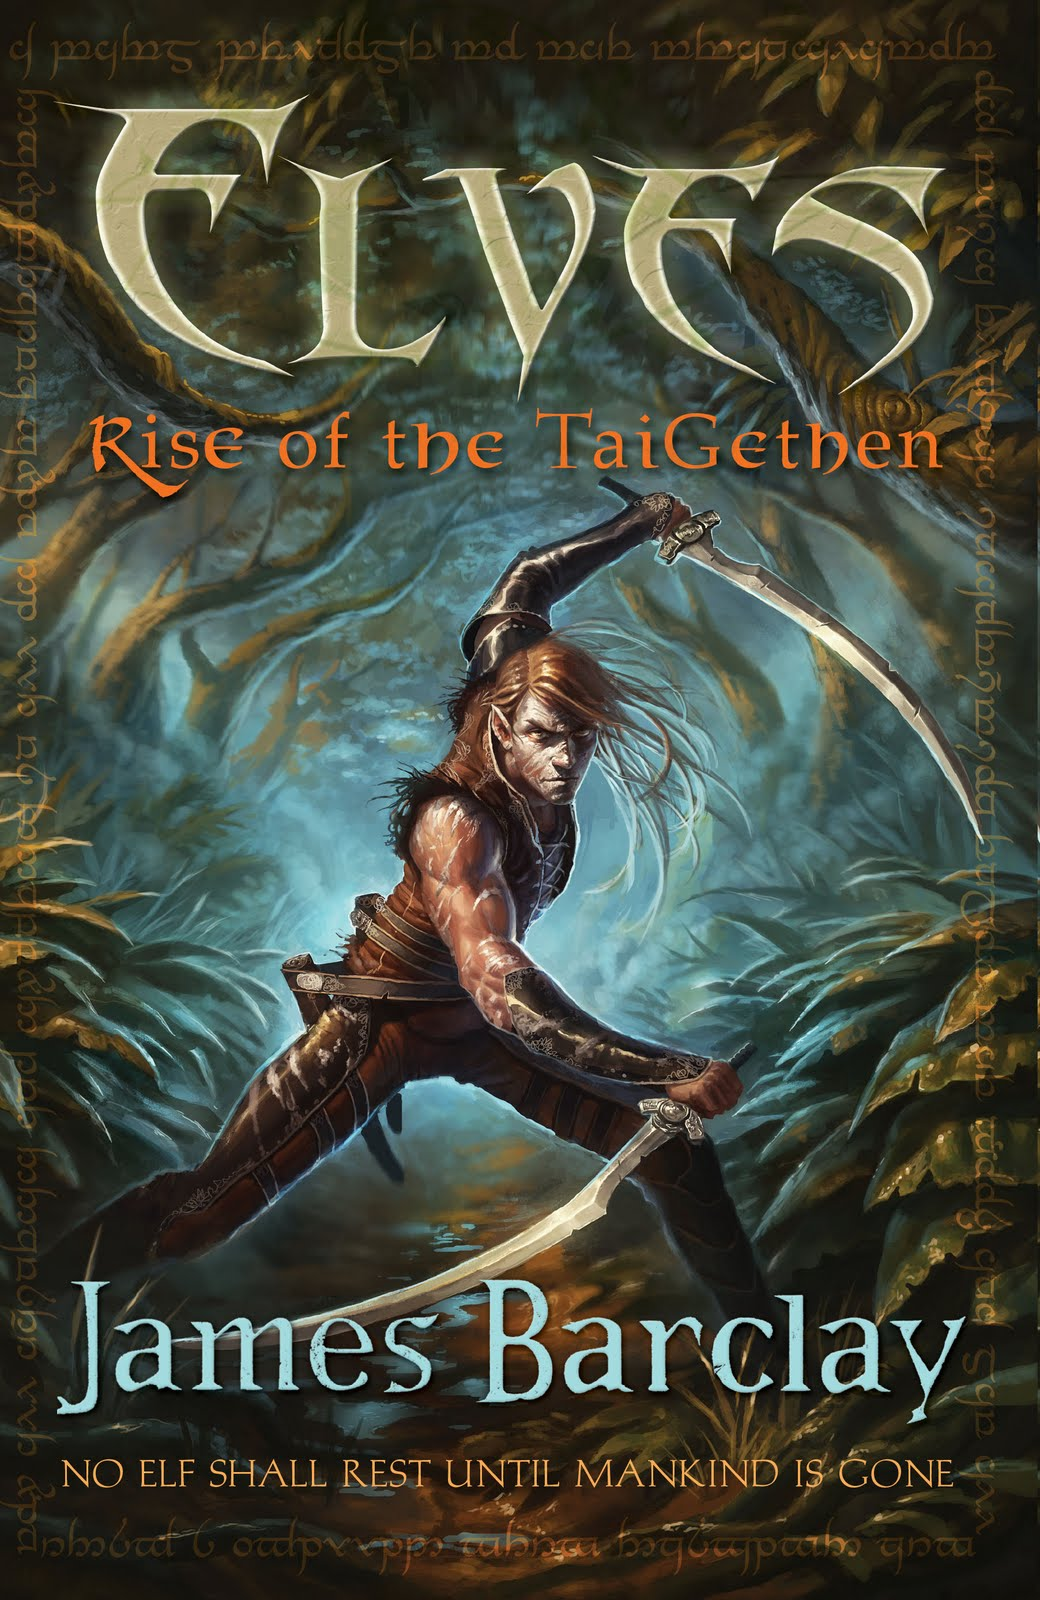 Book Cover Fantasy ~ Speculative horizons artwork for elves rise of the taigethen